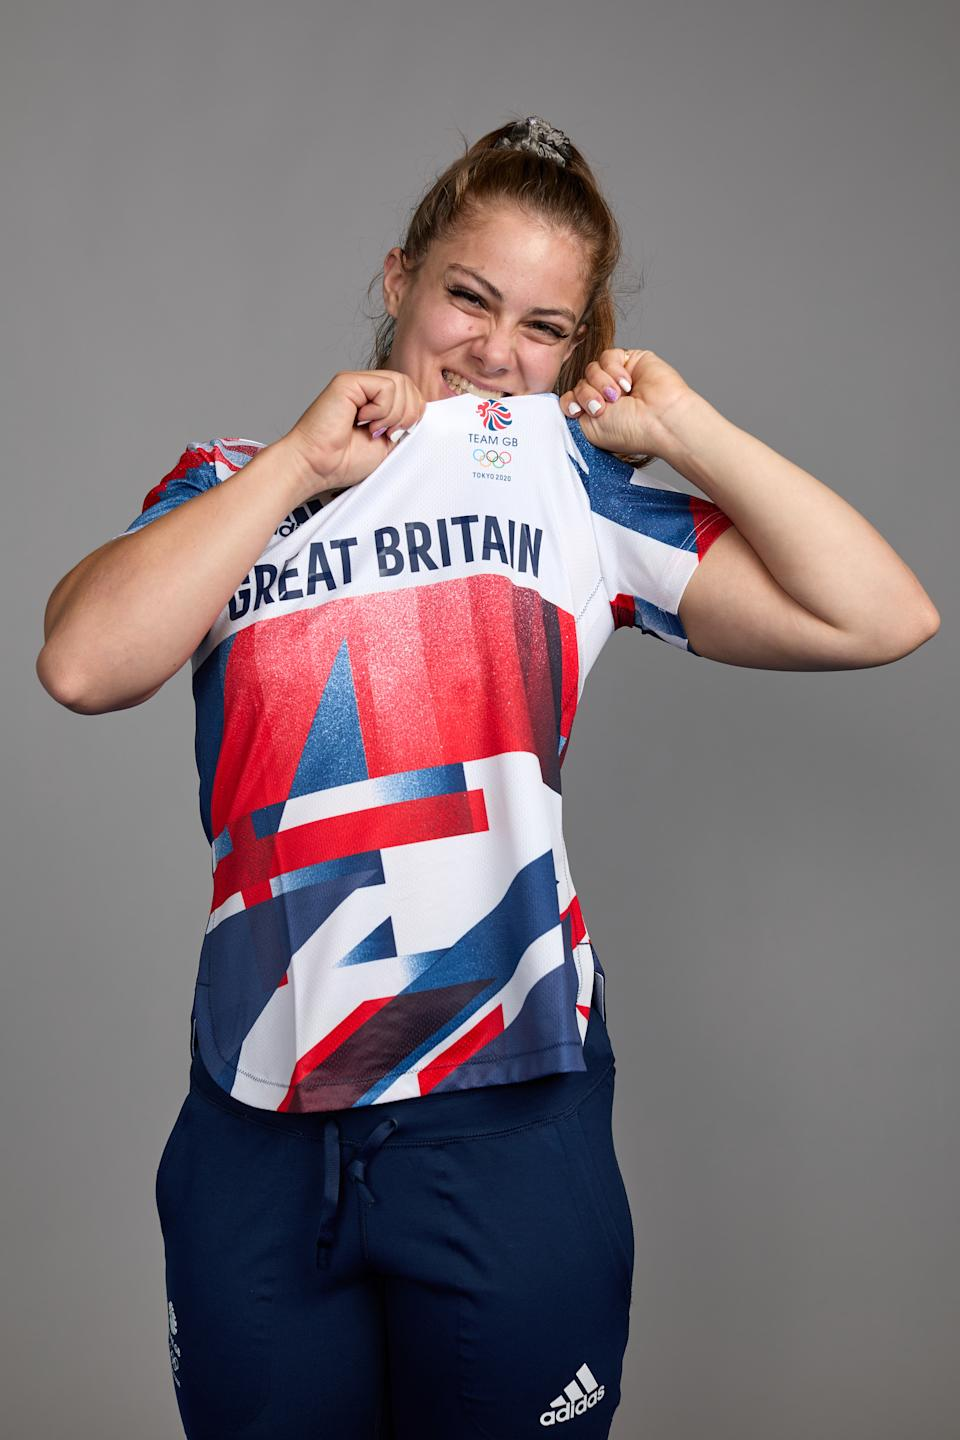 Bethany Shriever even got a shout-out from former Oasis frontman Liam Gallagher following her Olympic gold in Tokyo. (Getty)